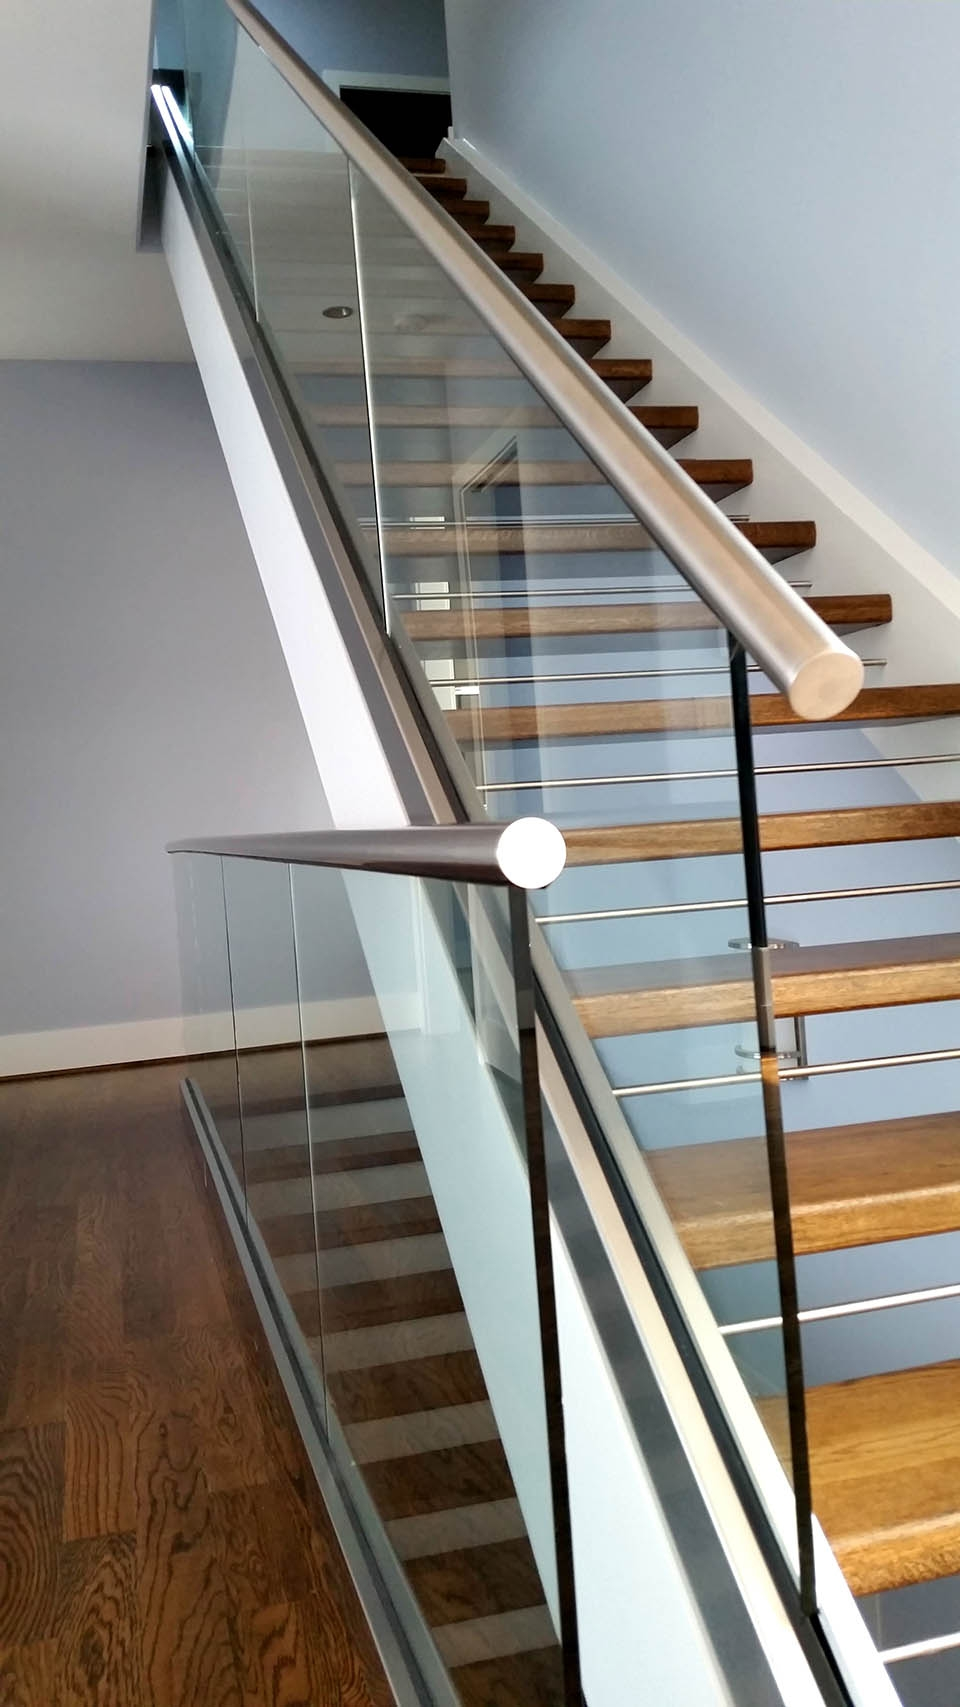 Stainless Steel Staircase Southern Staircase Artistic Stairs   Steel Design For Stairs   Spiral   Elegant Steel   Architectural Steel   Simple   Stringer